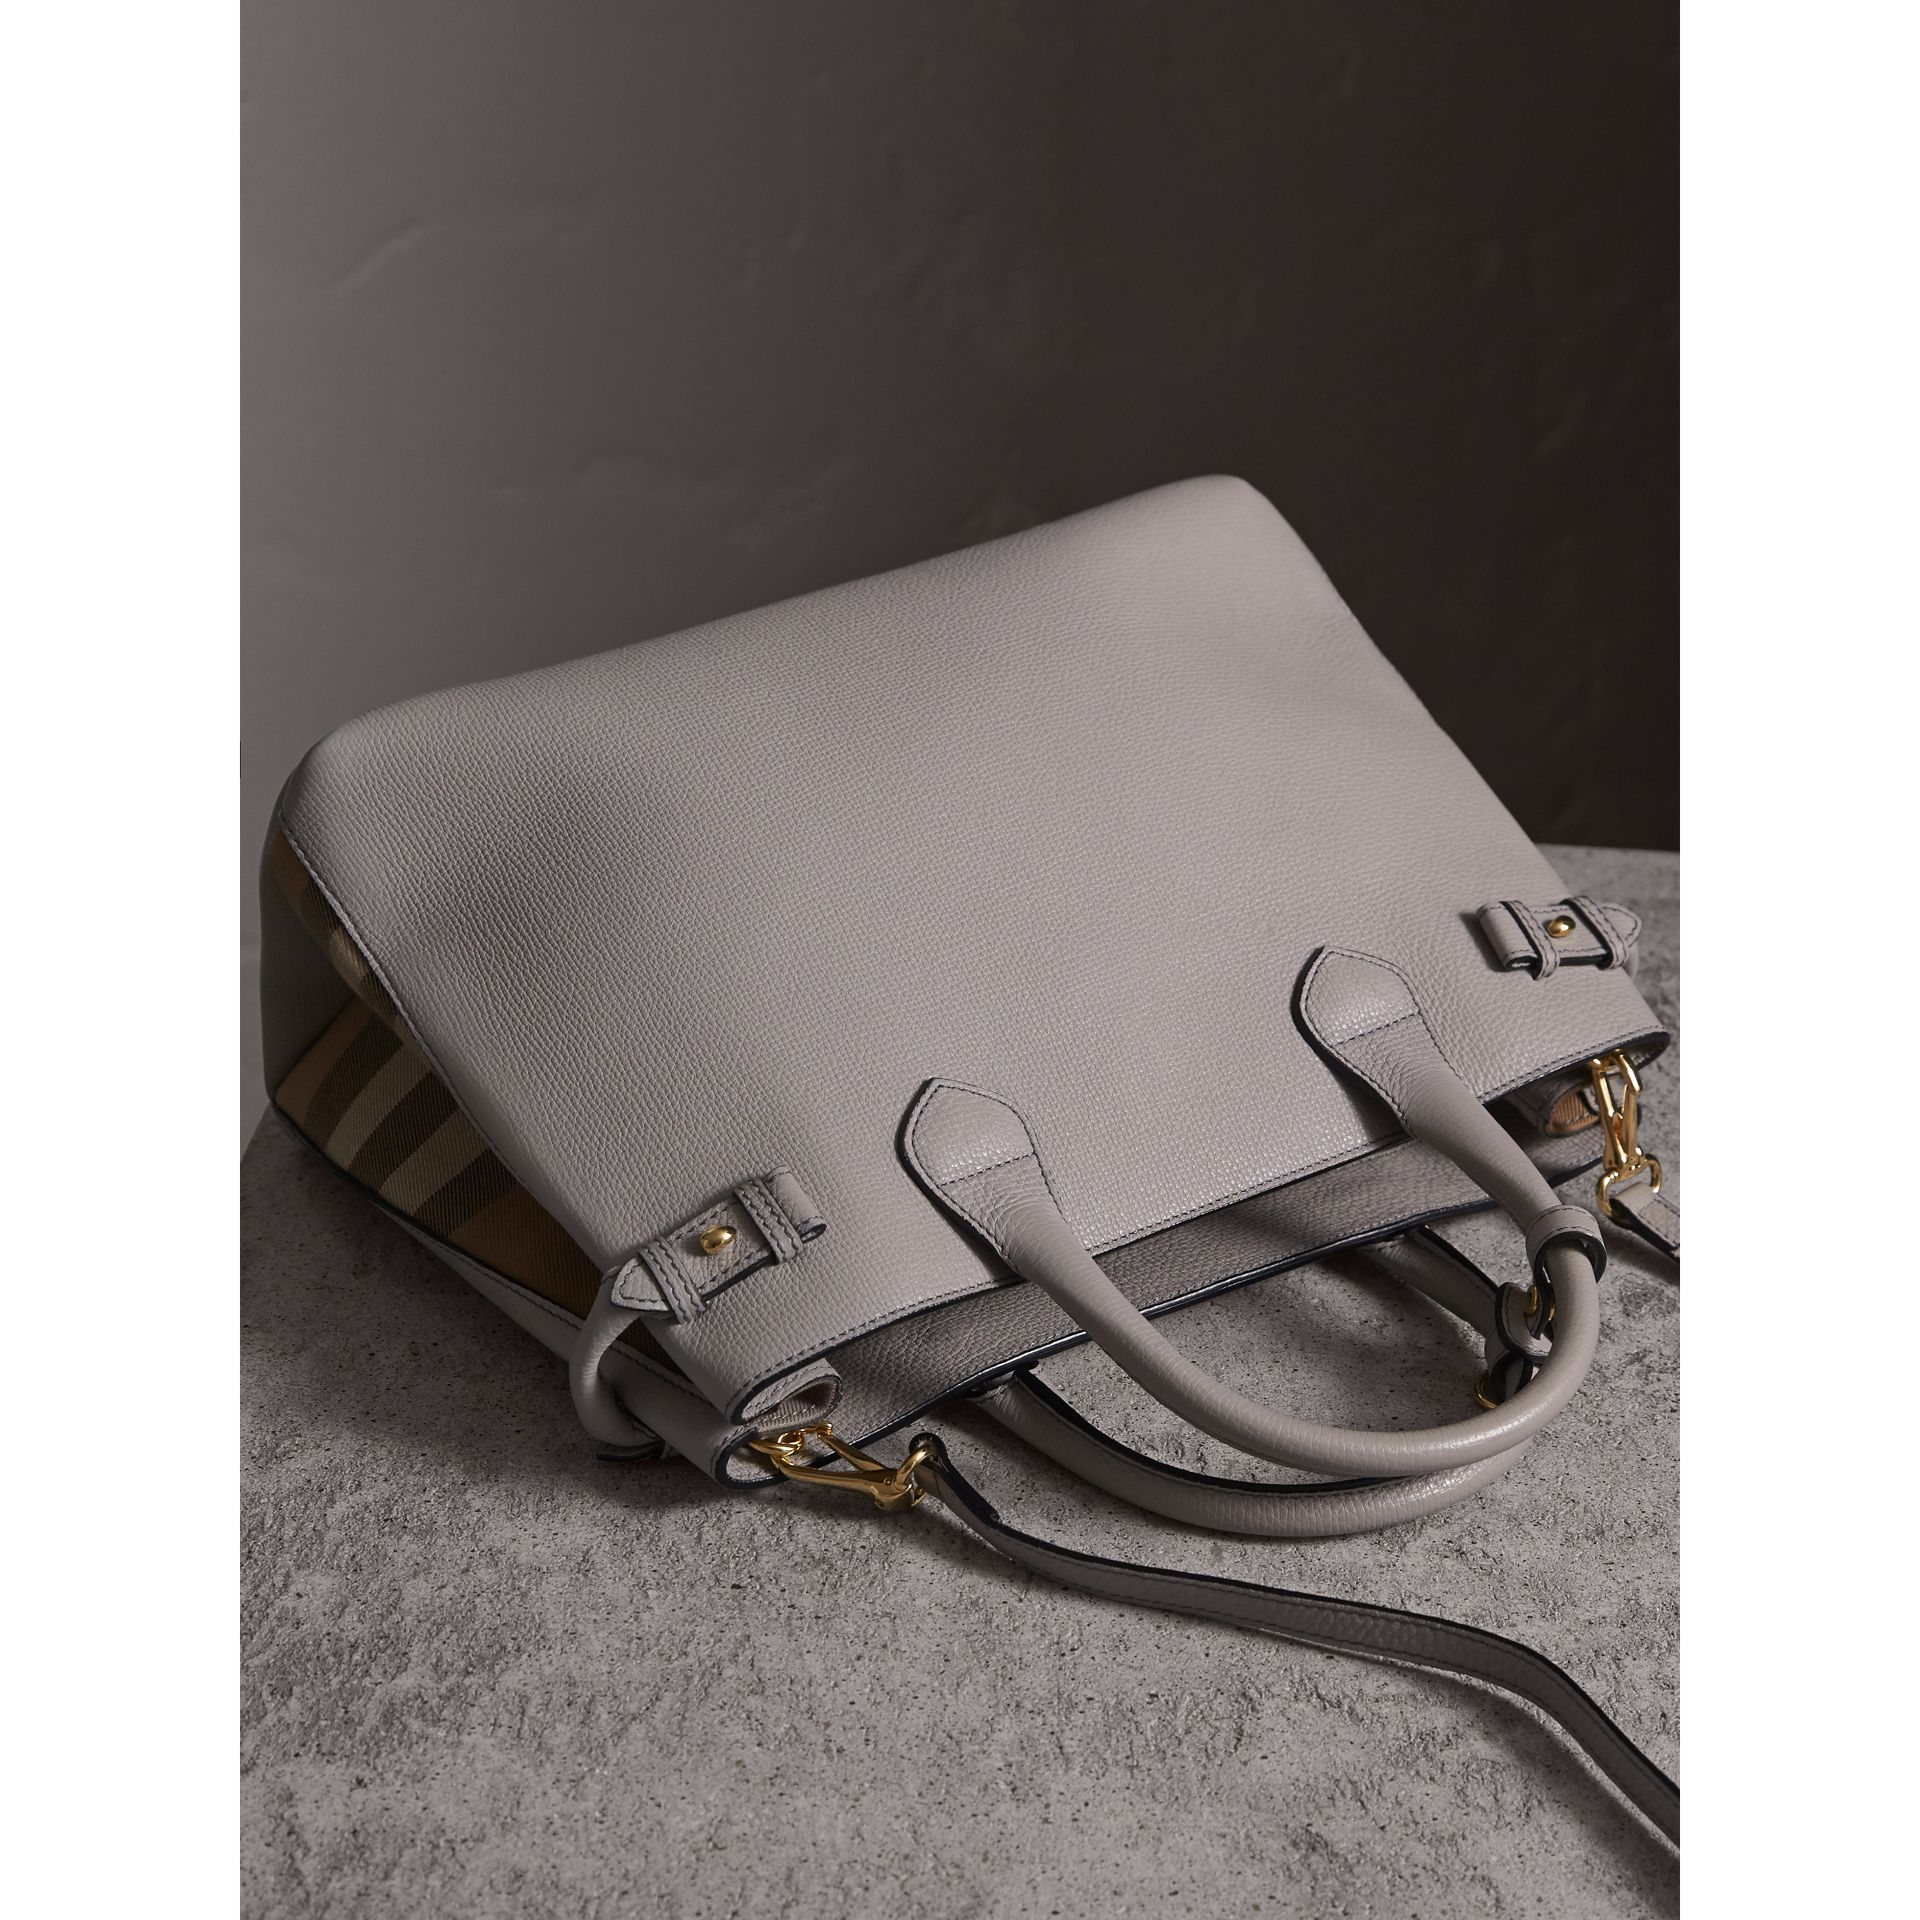 Sac The Banner medium en cuir et coton House check (Camaïeu De Gris Clairs) - Femme | Burberry - photo de la galerie 4